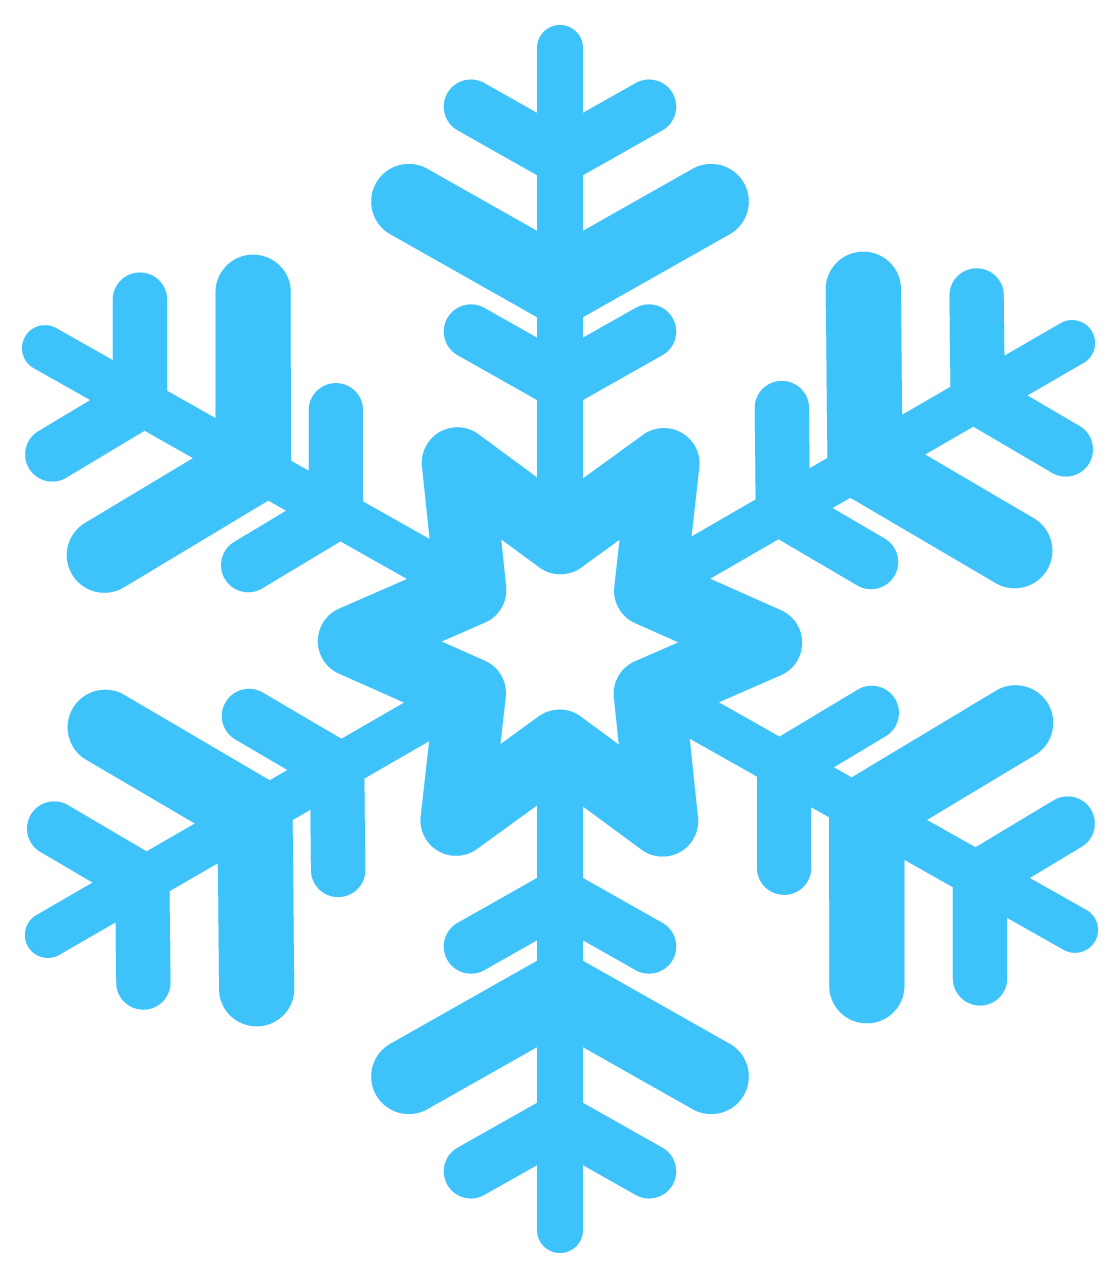 simple blue snowflakes png